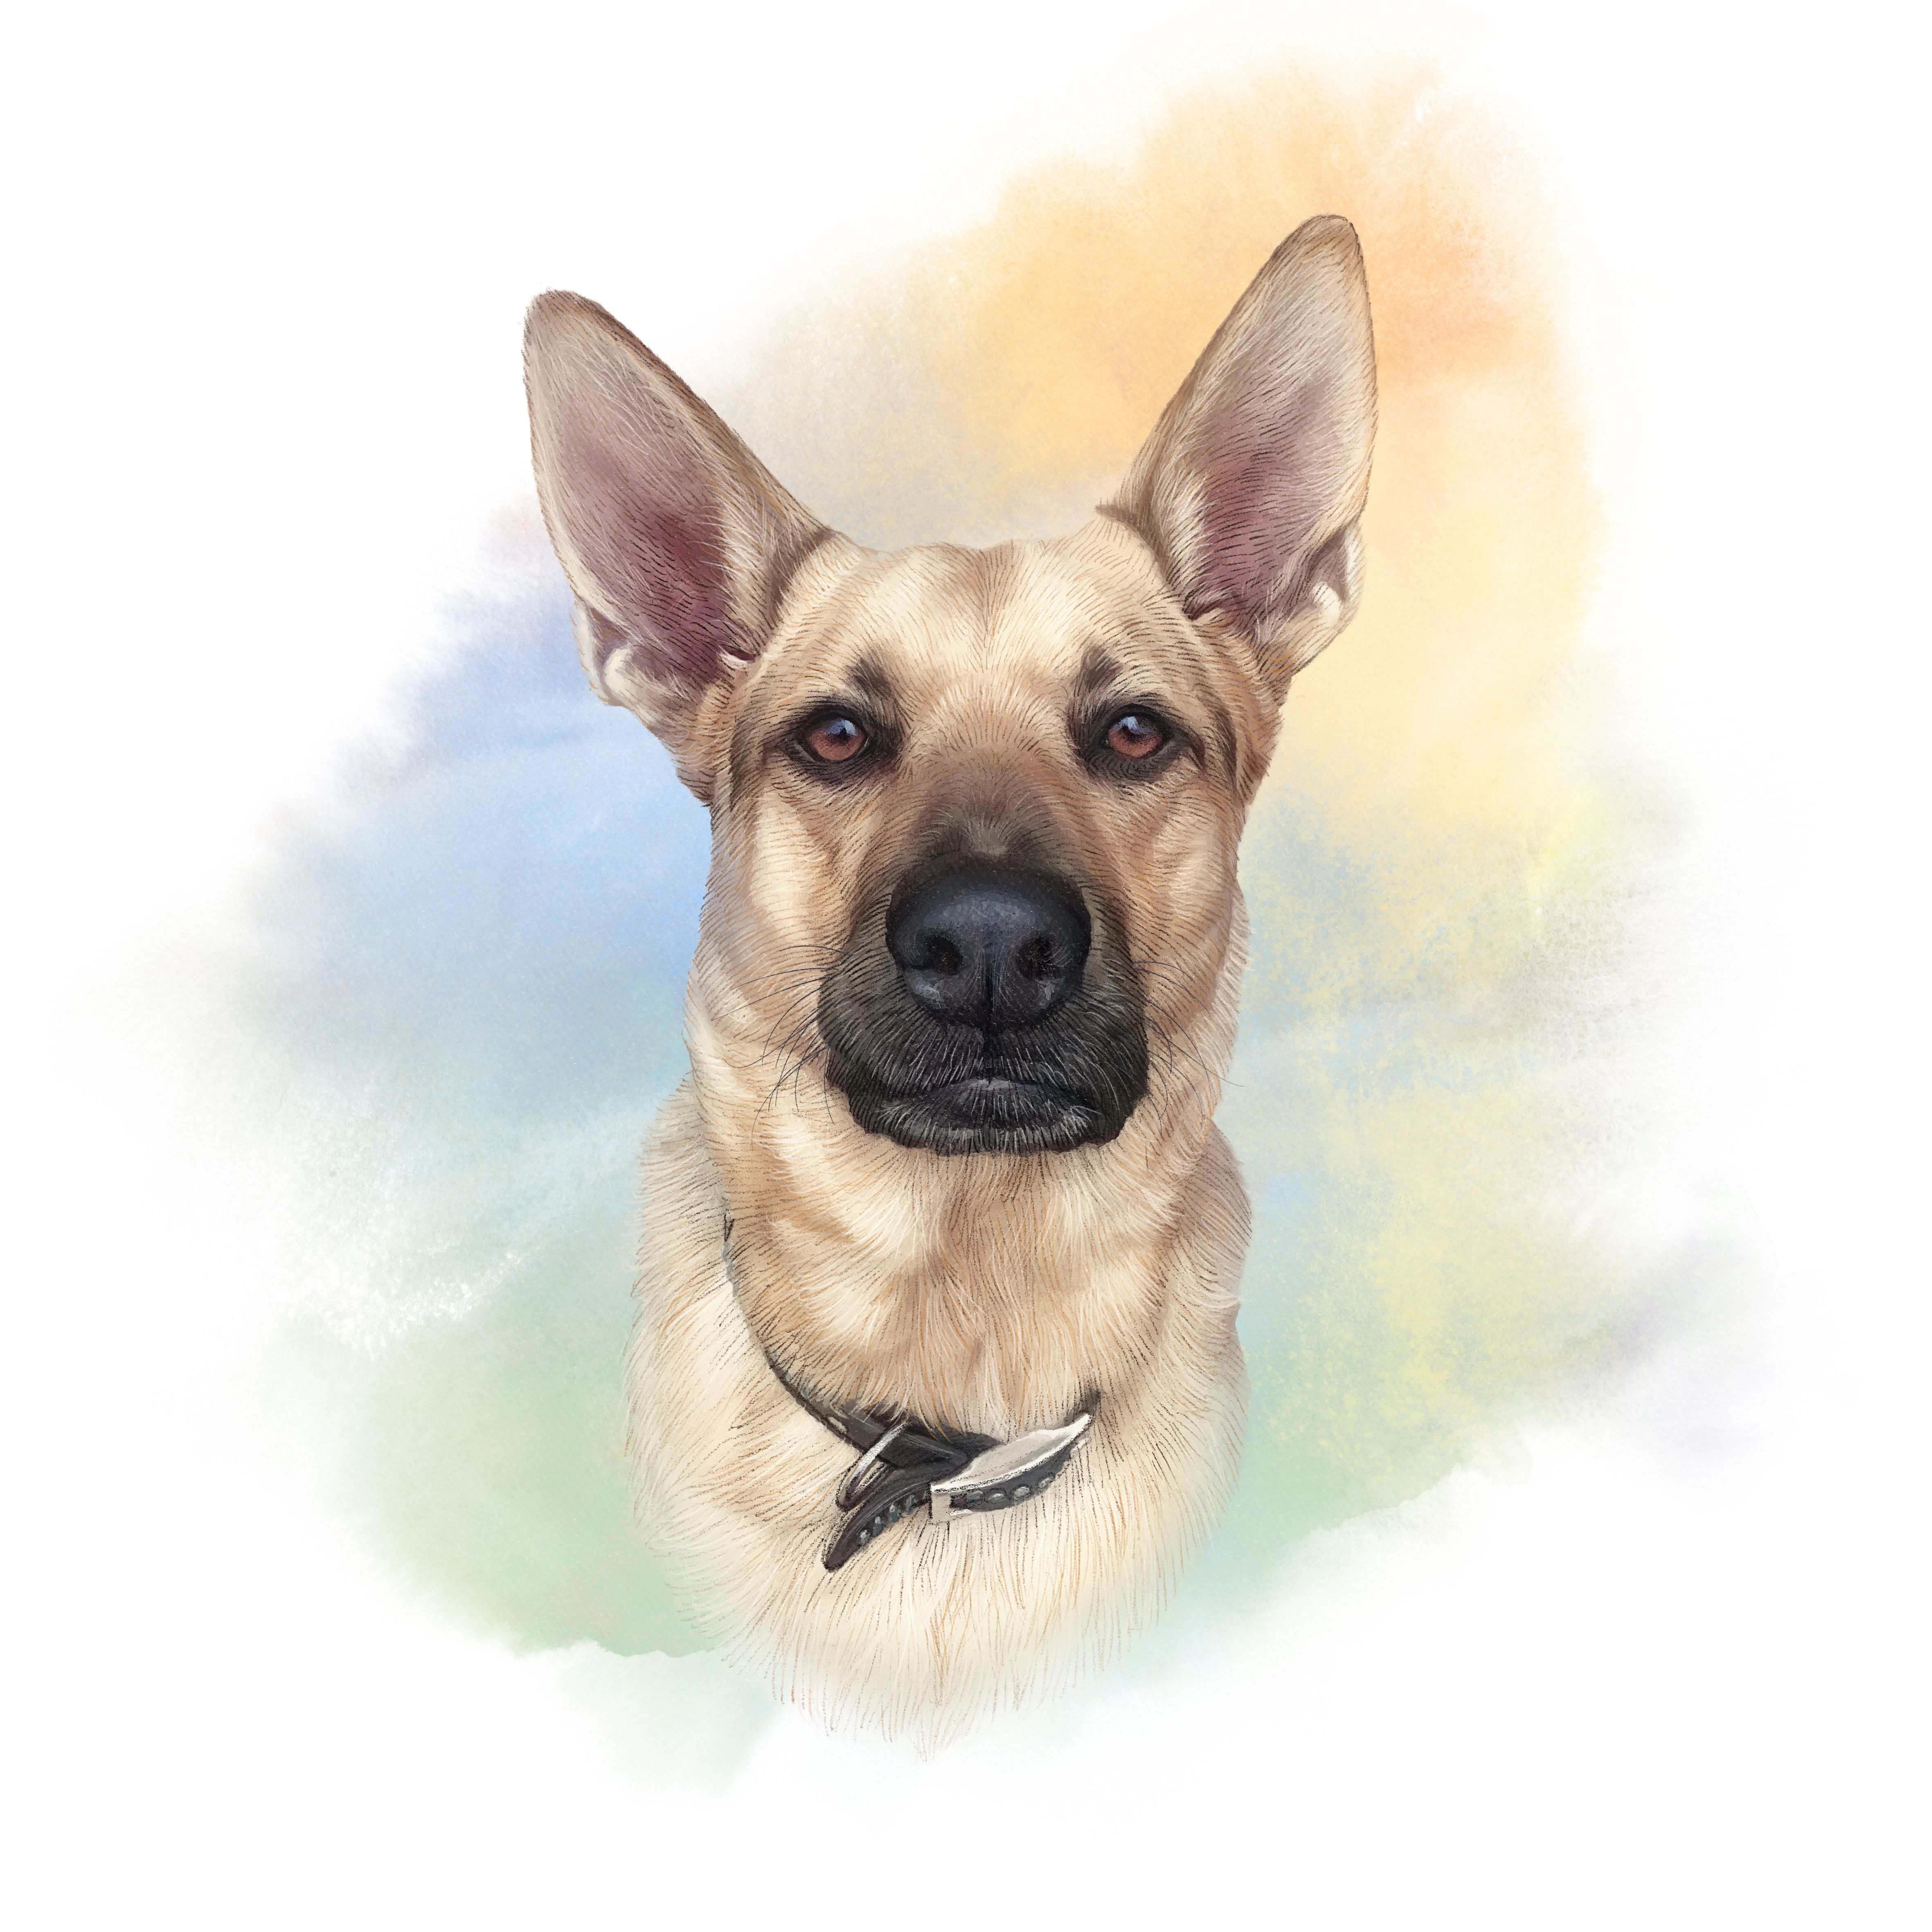 Your product's name Dogs, Dog lovers, Dog paintings